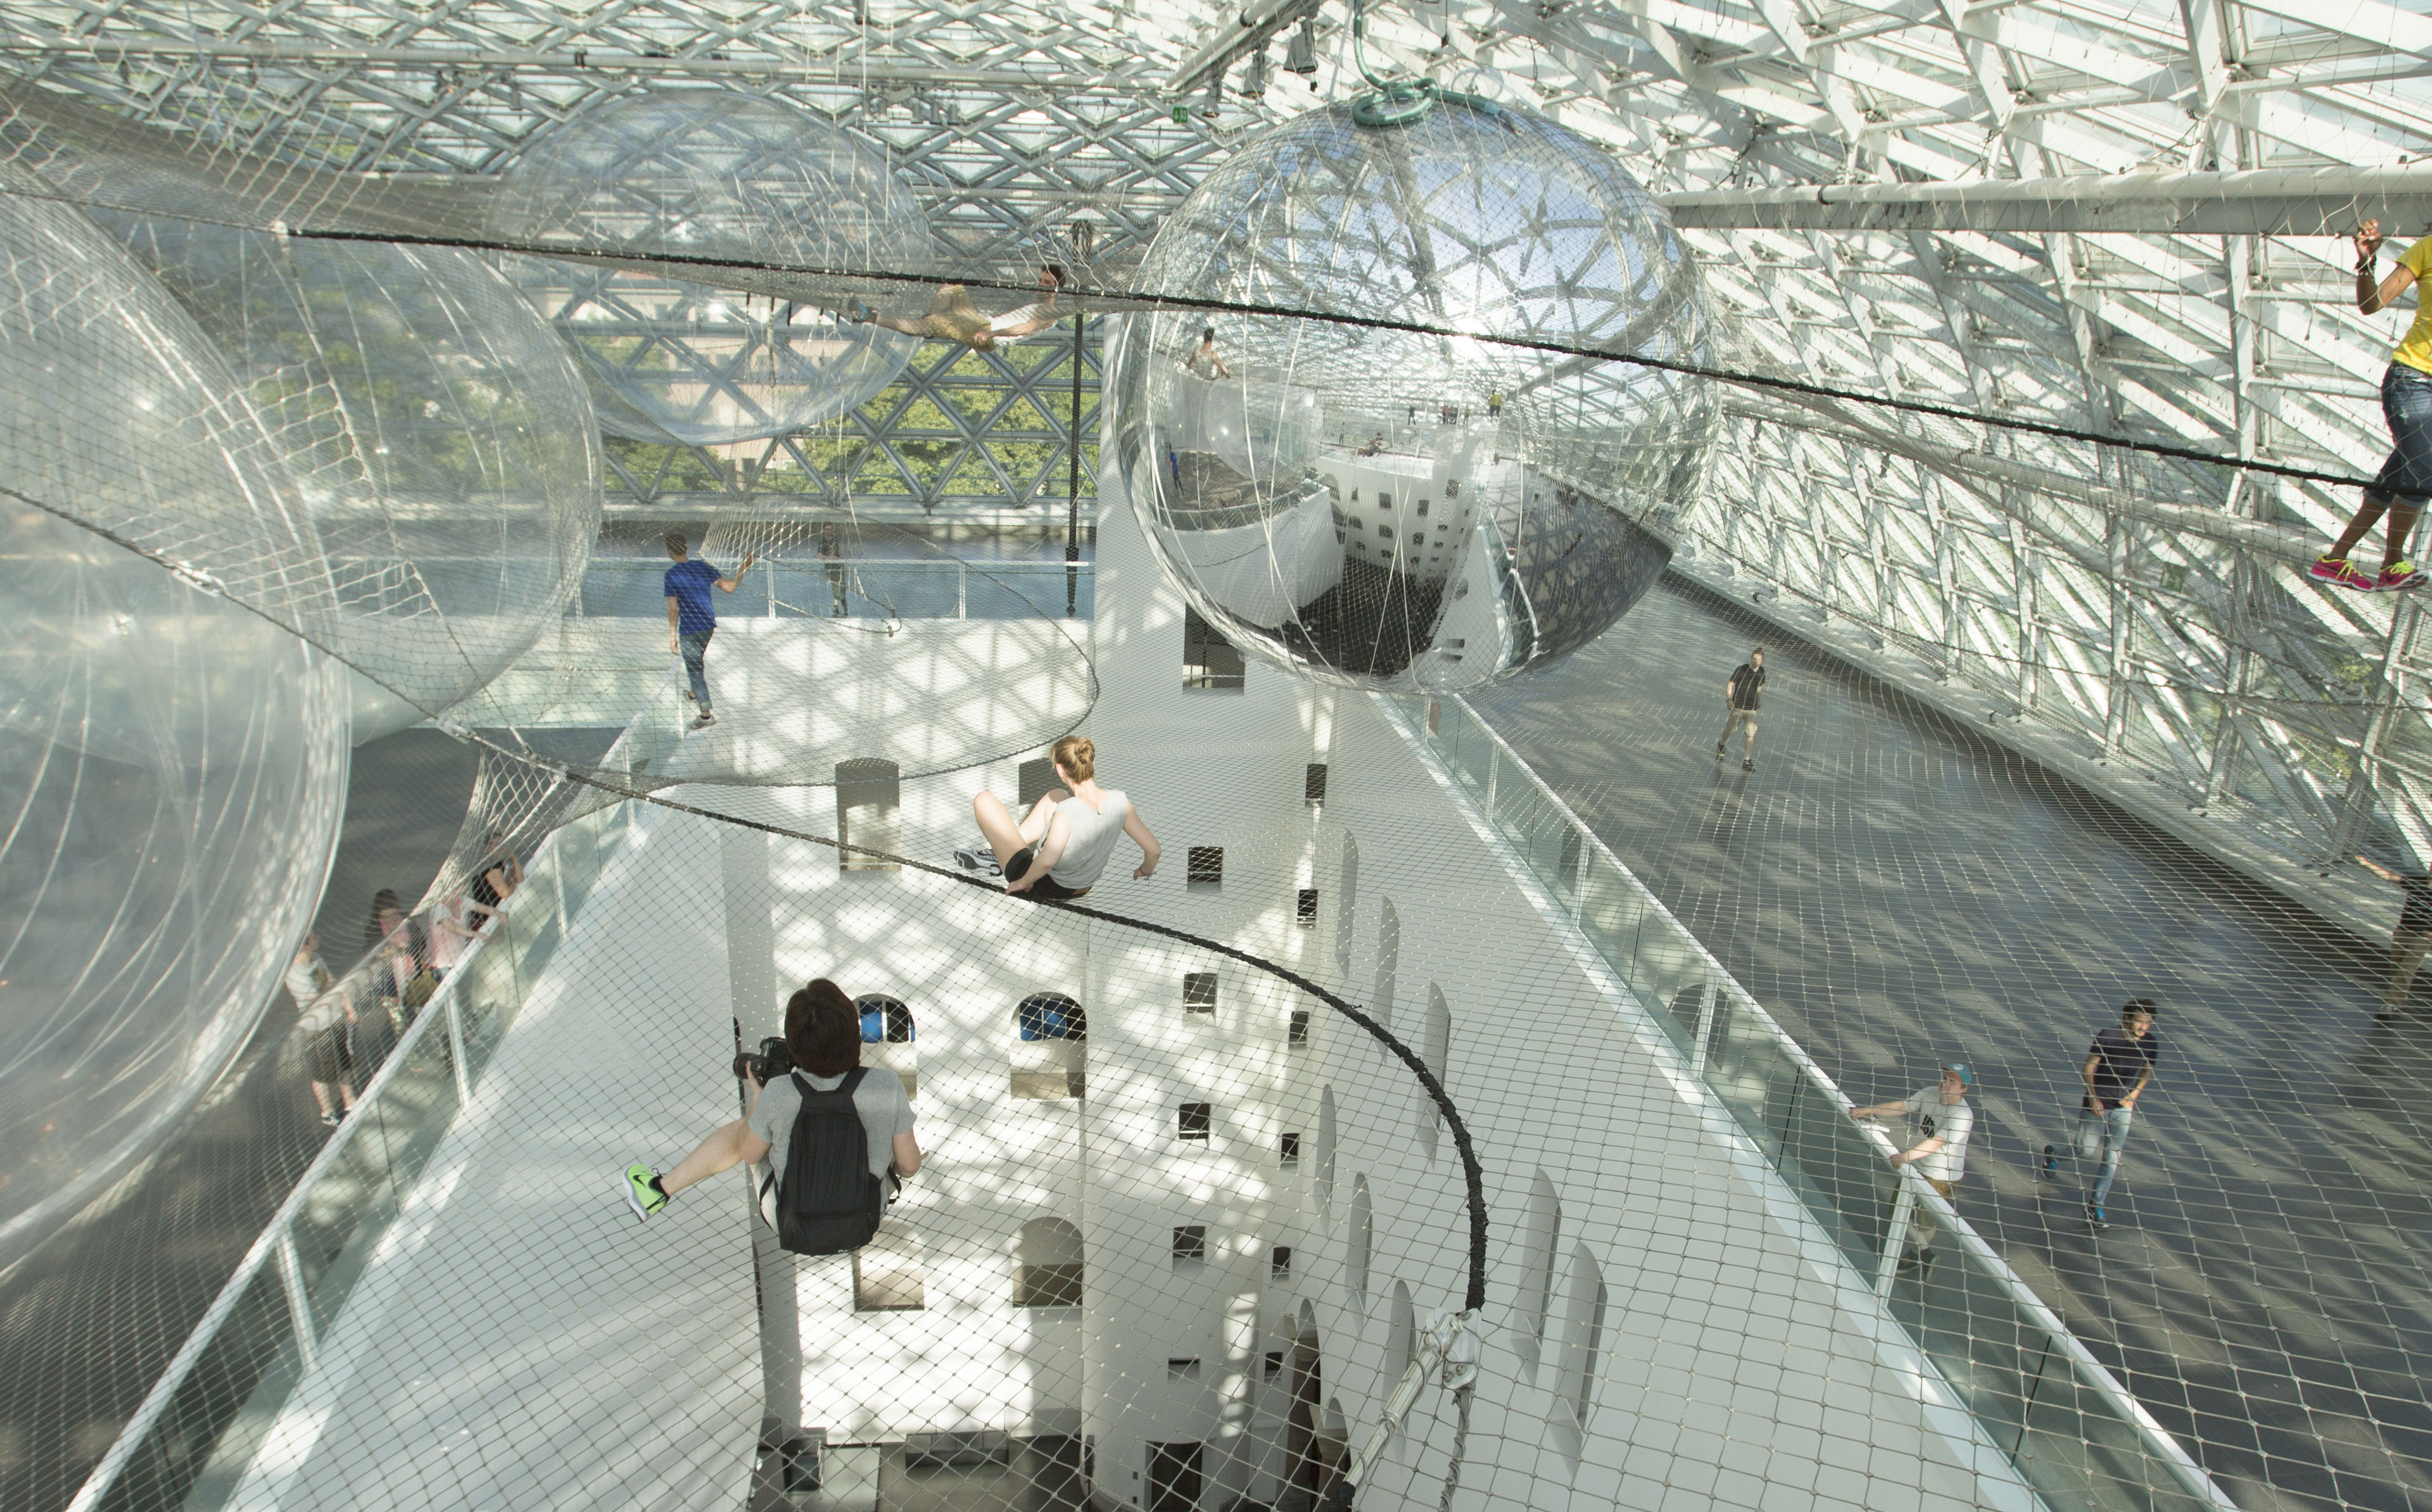 Bauhausgebäude Dessau-Rosslau, Tomás Saraceno, in orbit, view from the installation (work in ...